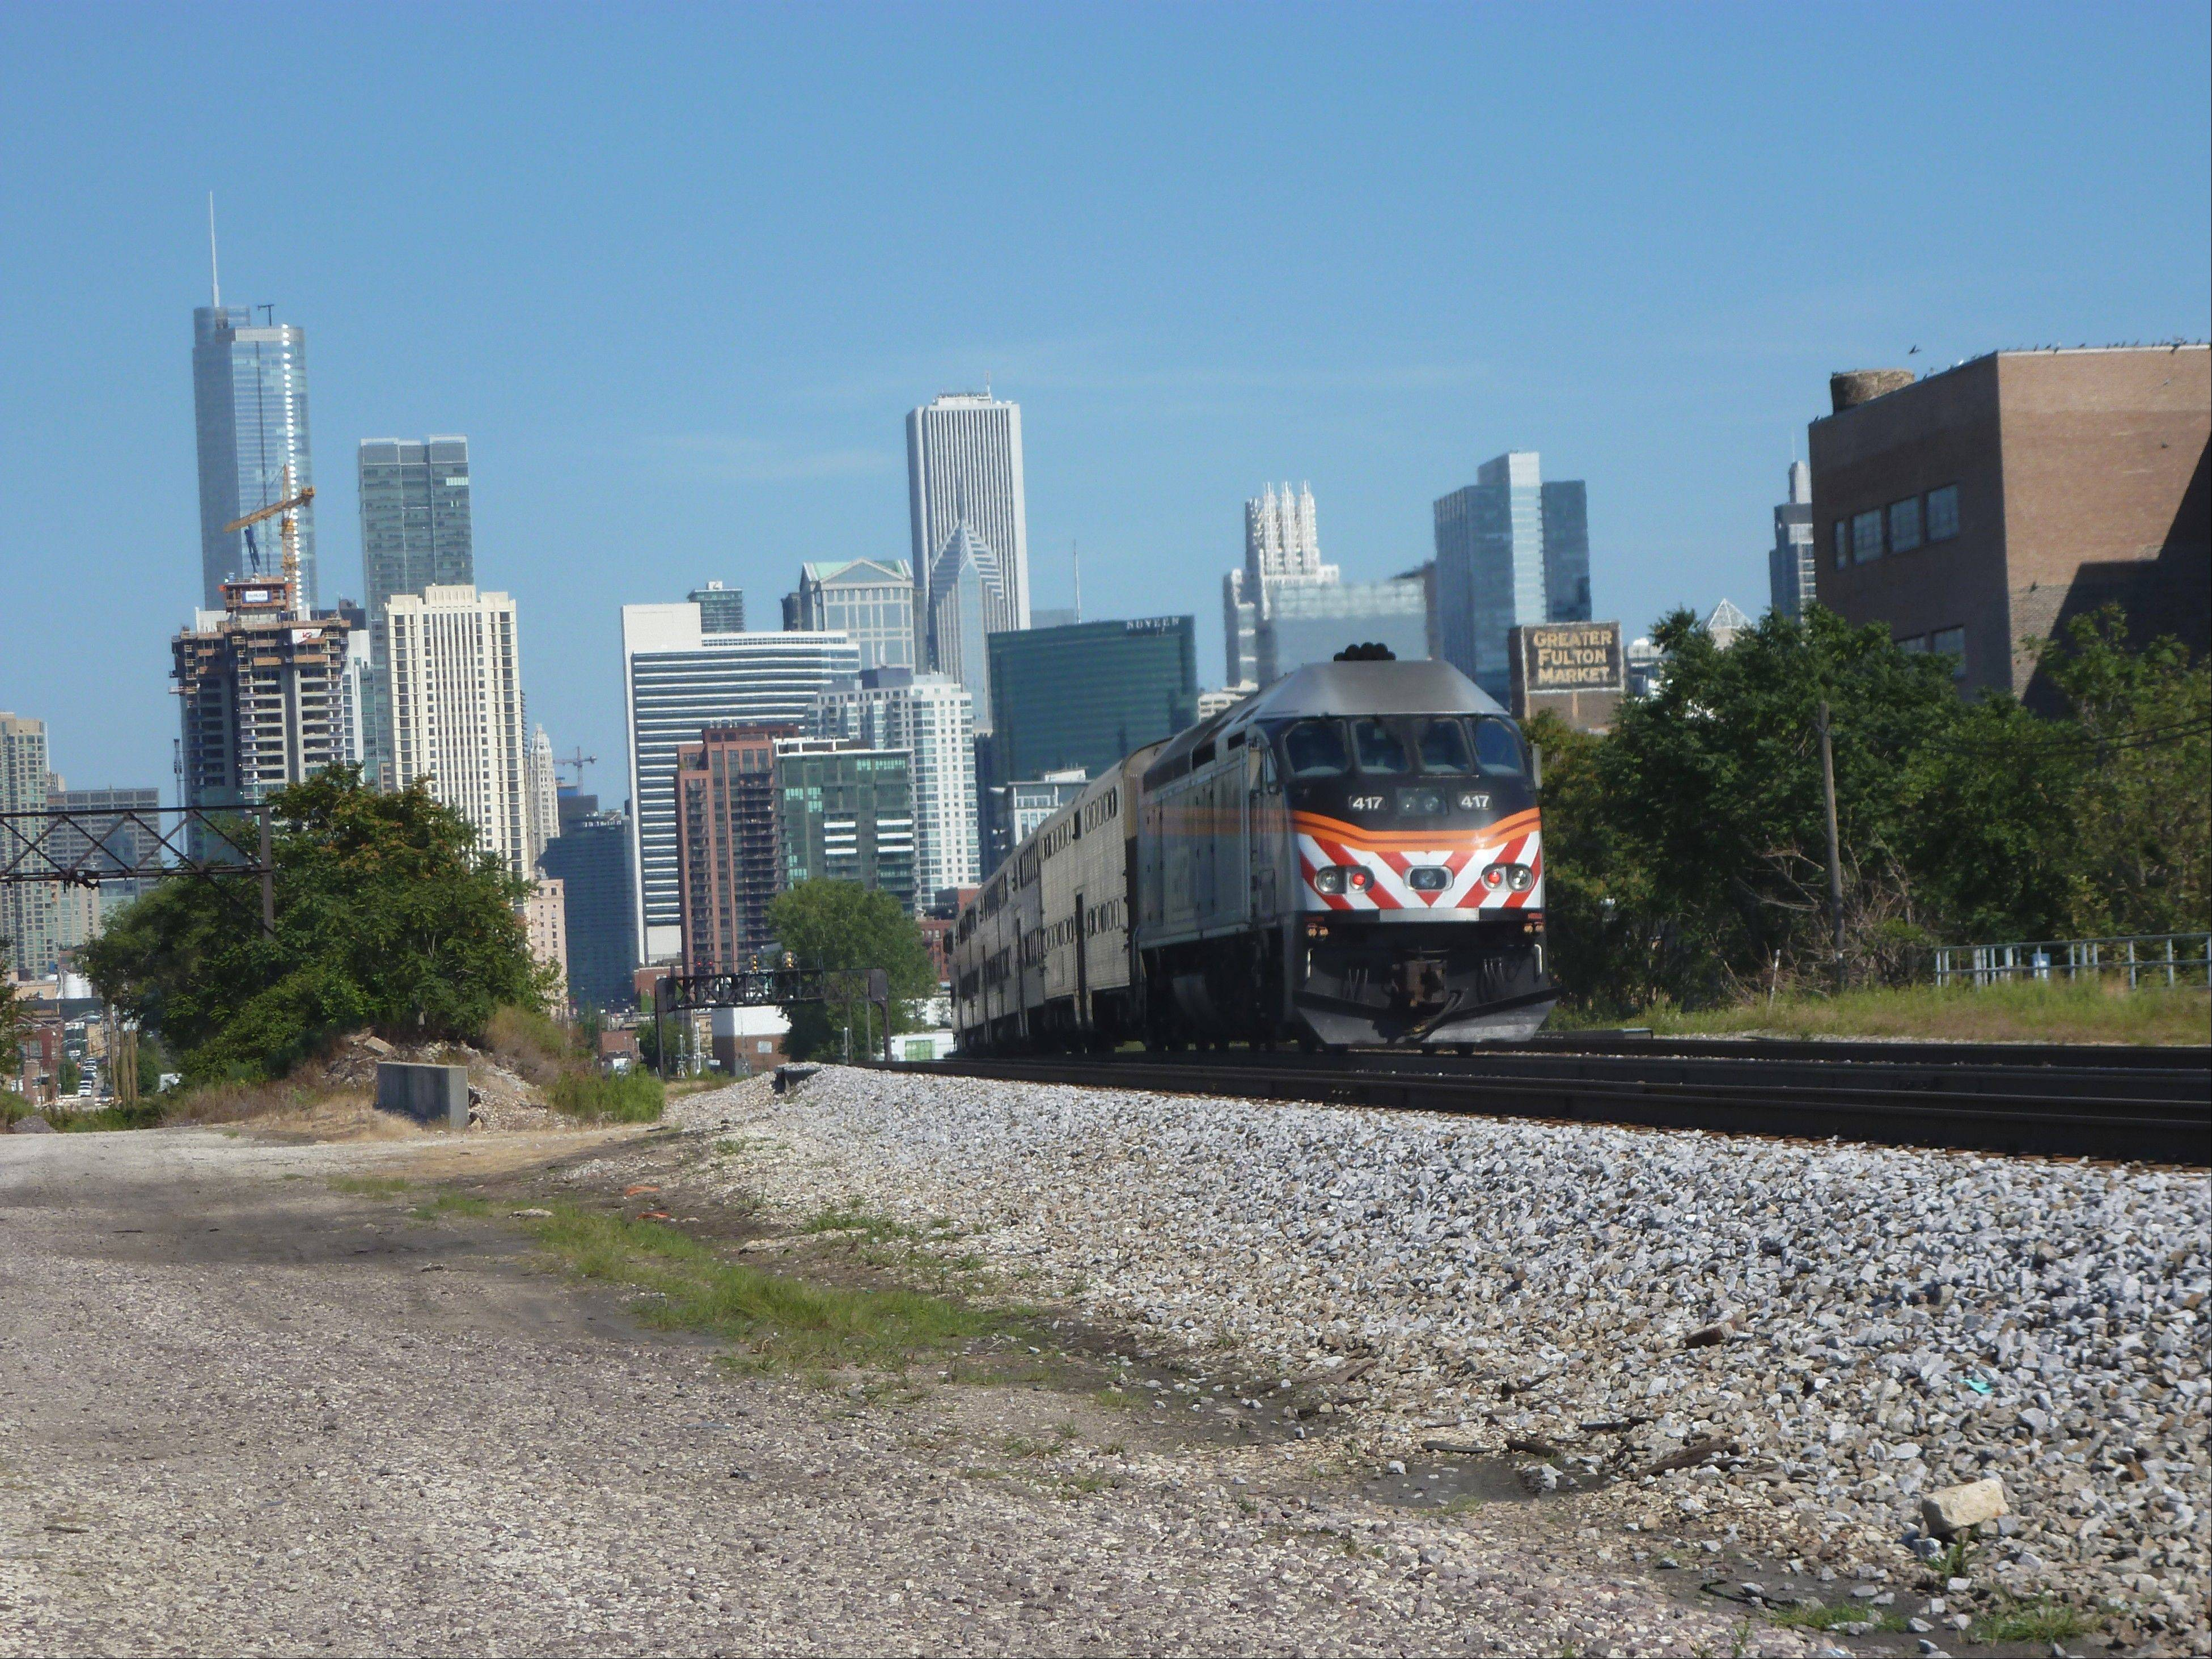 If you're starting in the suburbs, you can ditch the car and take Metra to the city for your staycation.